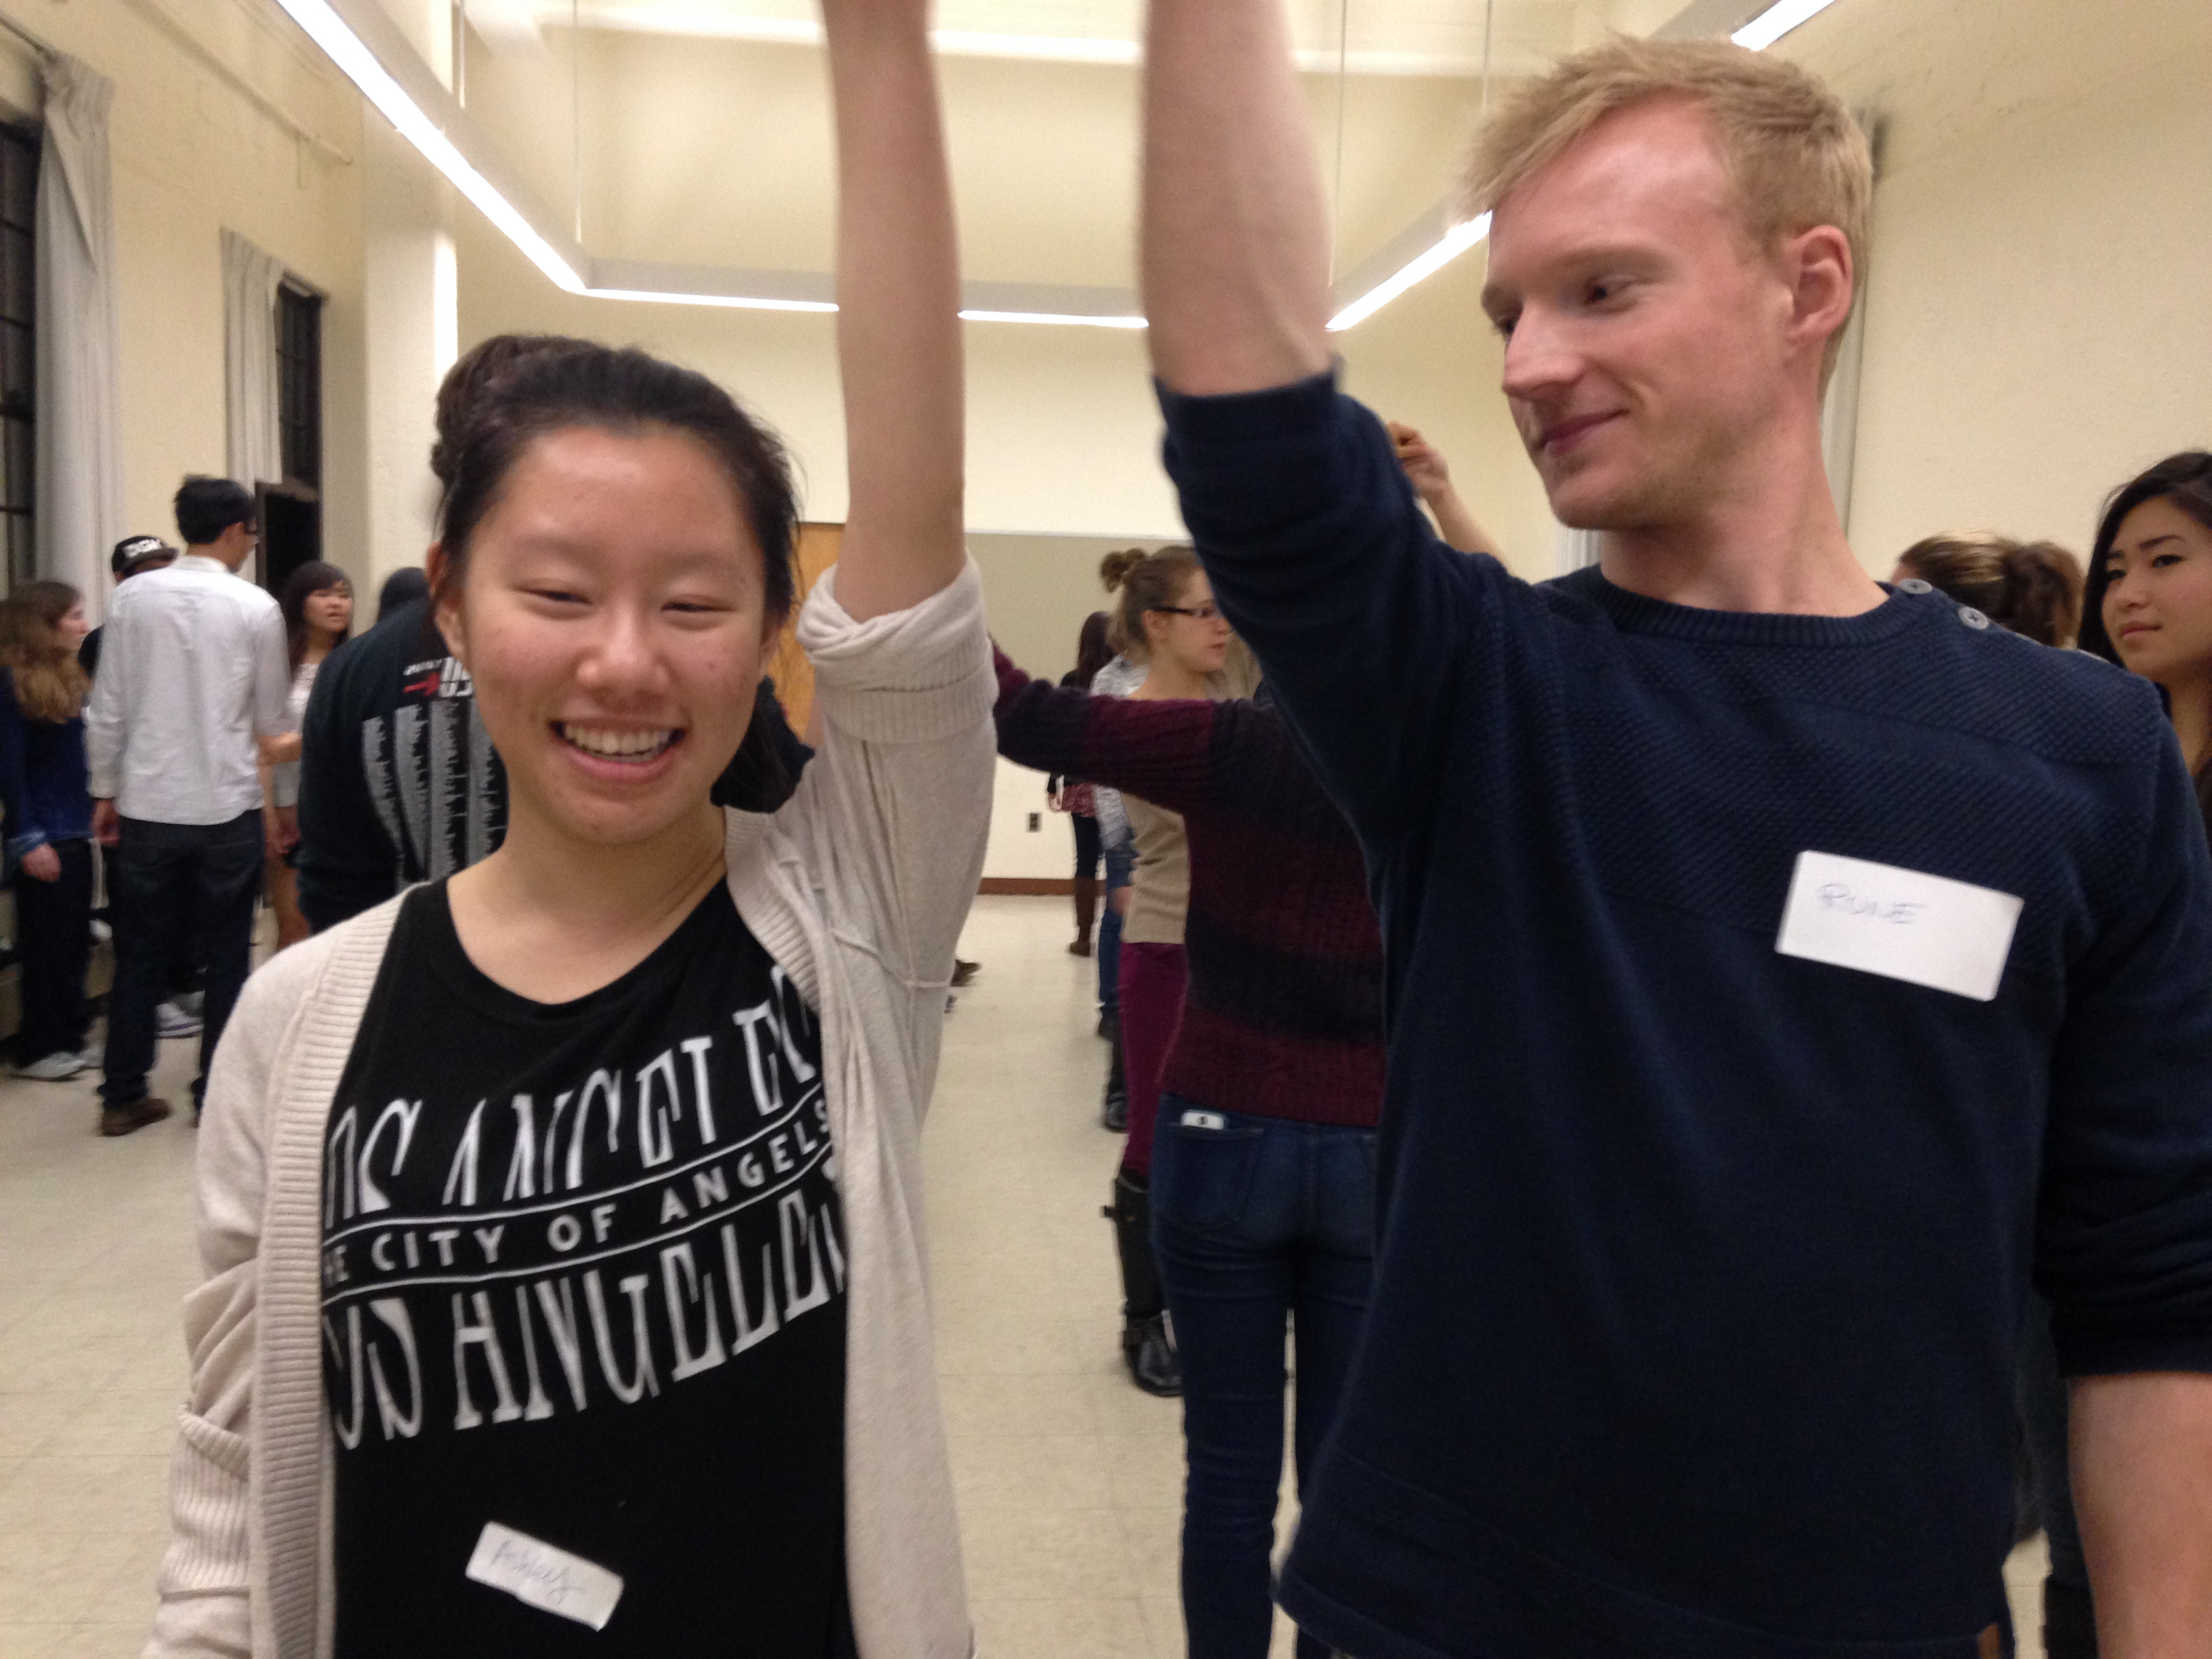 Two students practice a California twirl at UC Berkeley's square dance student-ran class. (Samantha Clark/KQED)